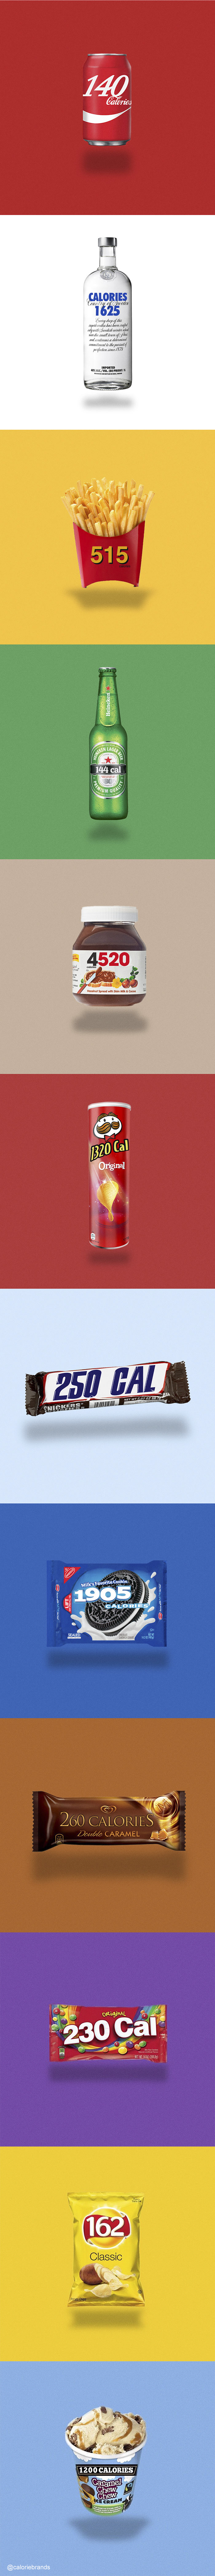 honest-product-logos-caloriebrands1 (2)